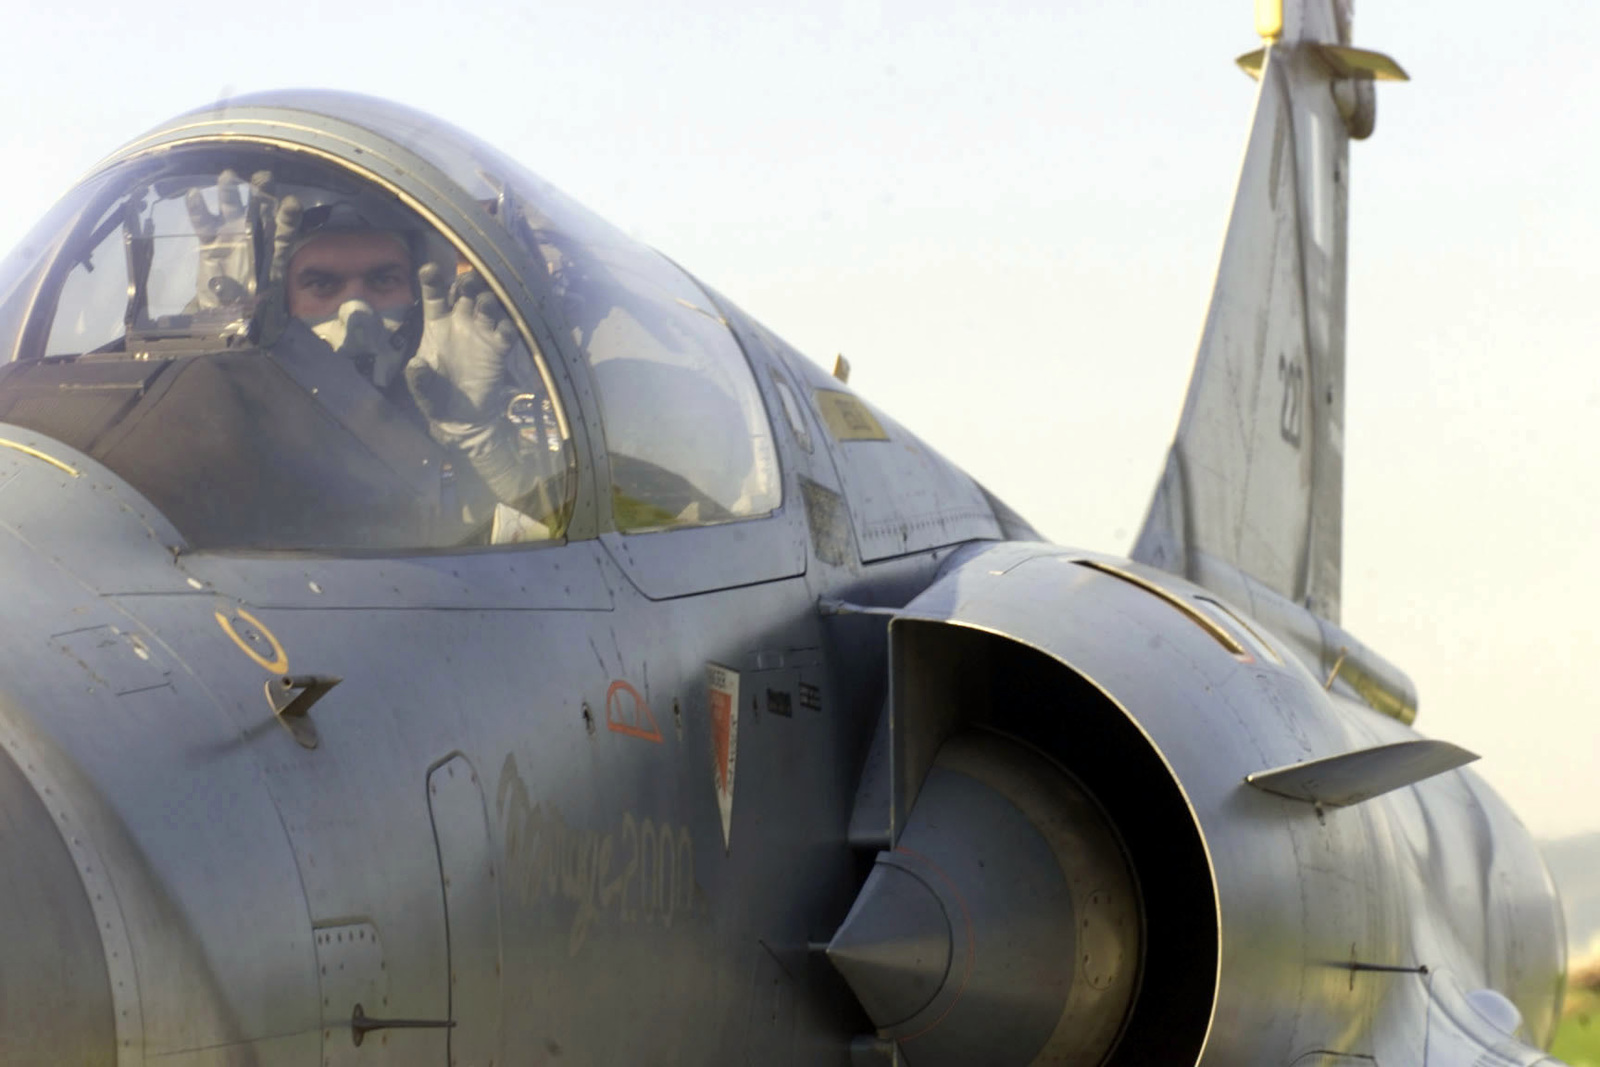 Captain Stefanos Ampouleris, Hellinic Air Force, 114th Composite Group, 331st Tactical Fighter Wing, Greece, in his Mirage 2000 Fighter. The Hellinic unit is at Aviano Air Base to train with the 510th Fighter Squadron. The Mirages provide valuable dissimilar training allowing 510th Fighter pilots the opportunity to train against other types of aircraft. (Duplicate image, see also DFSD0101806 or search 000816F4728F004)